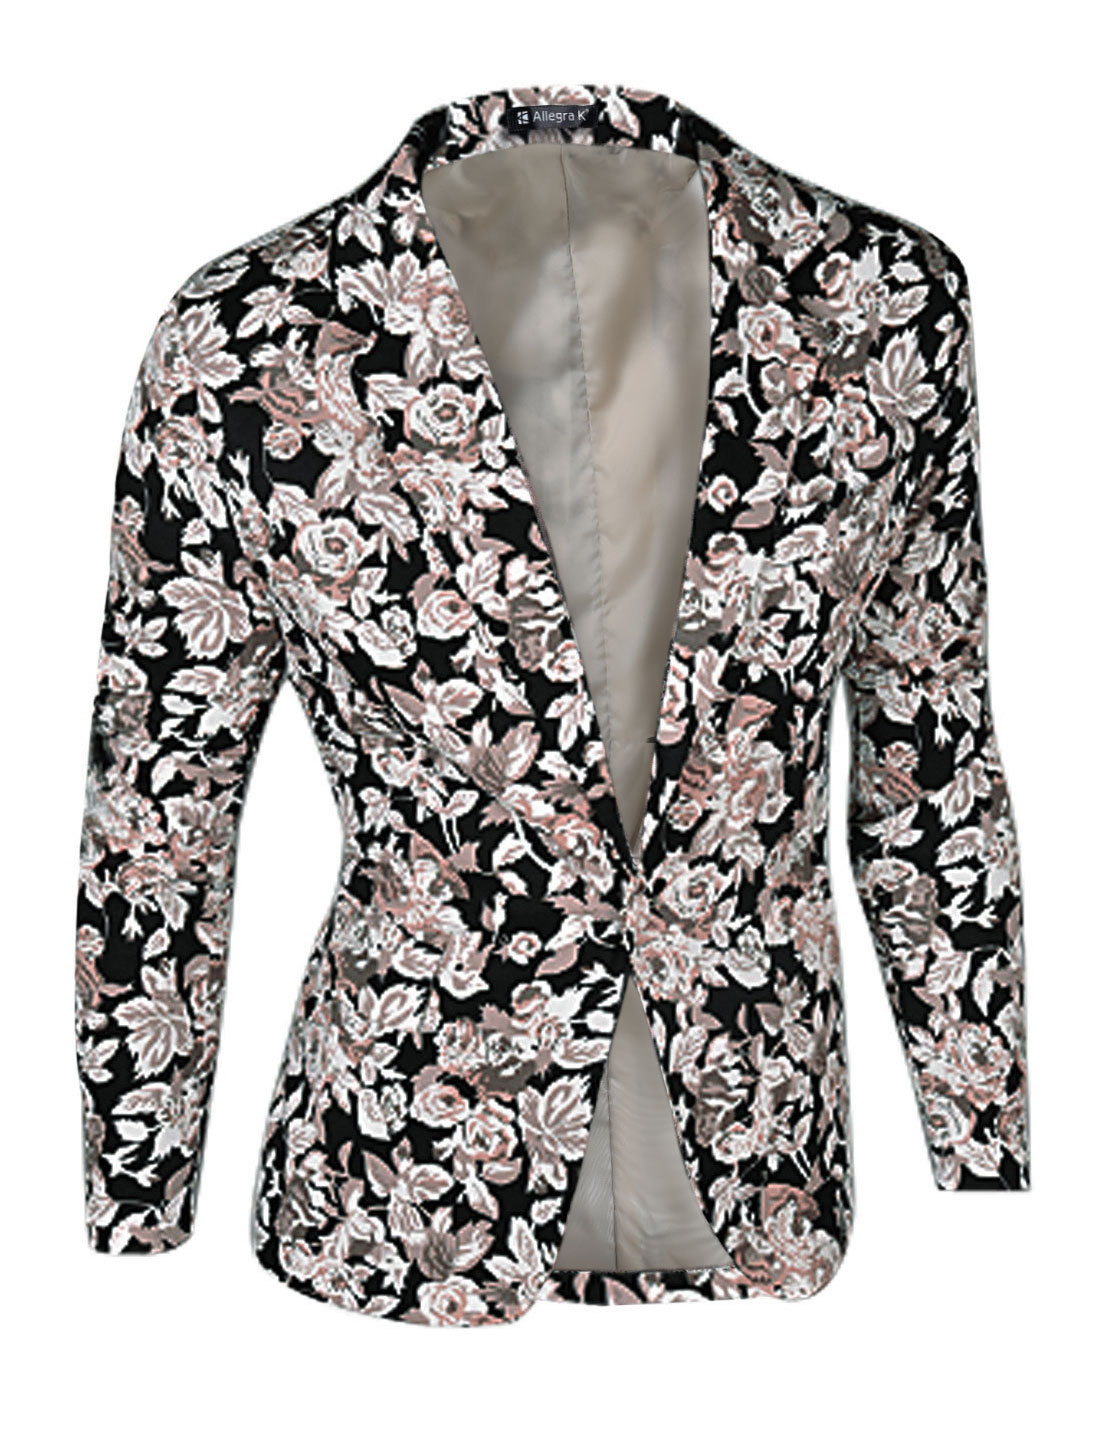 Men Floral Prints Long Sleeves Button Closed Casual Blazer Jacket Black S